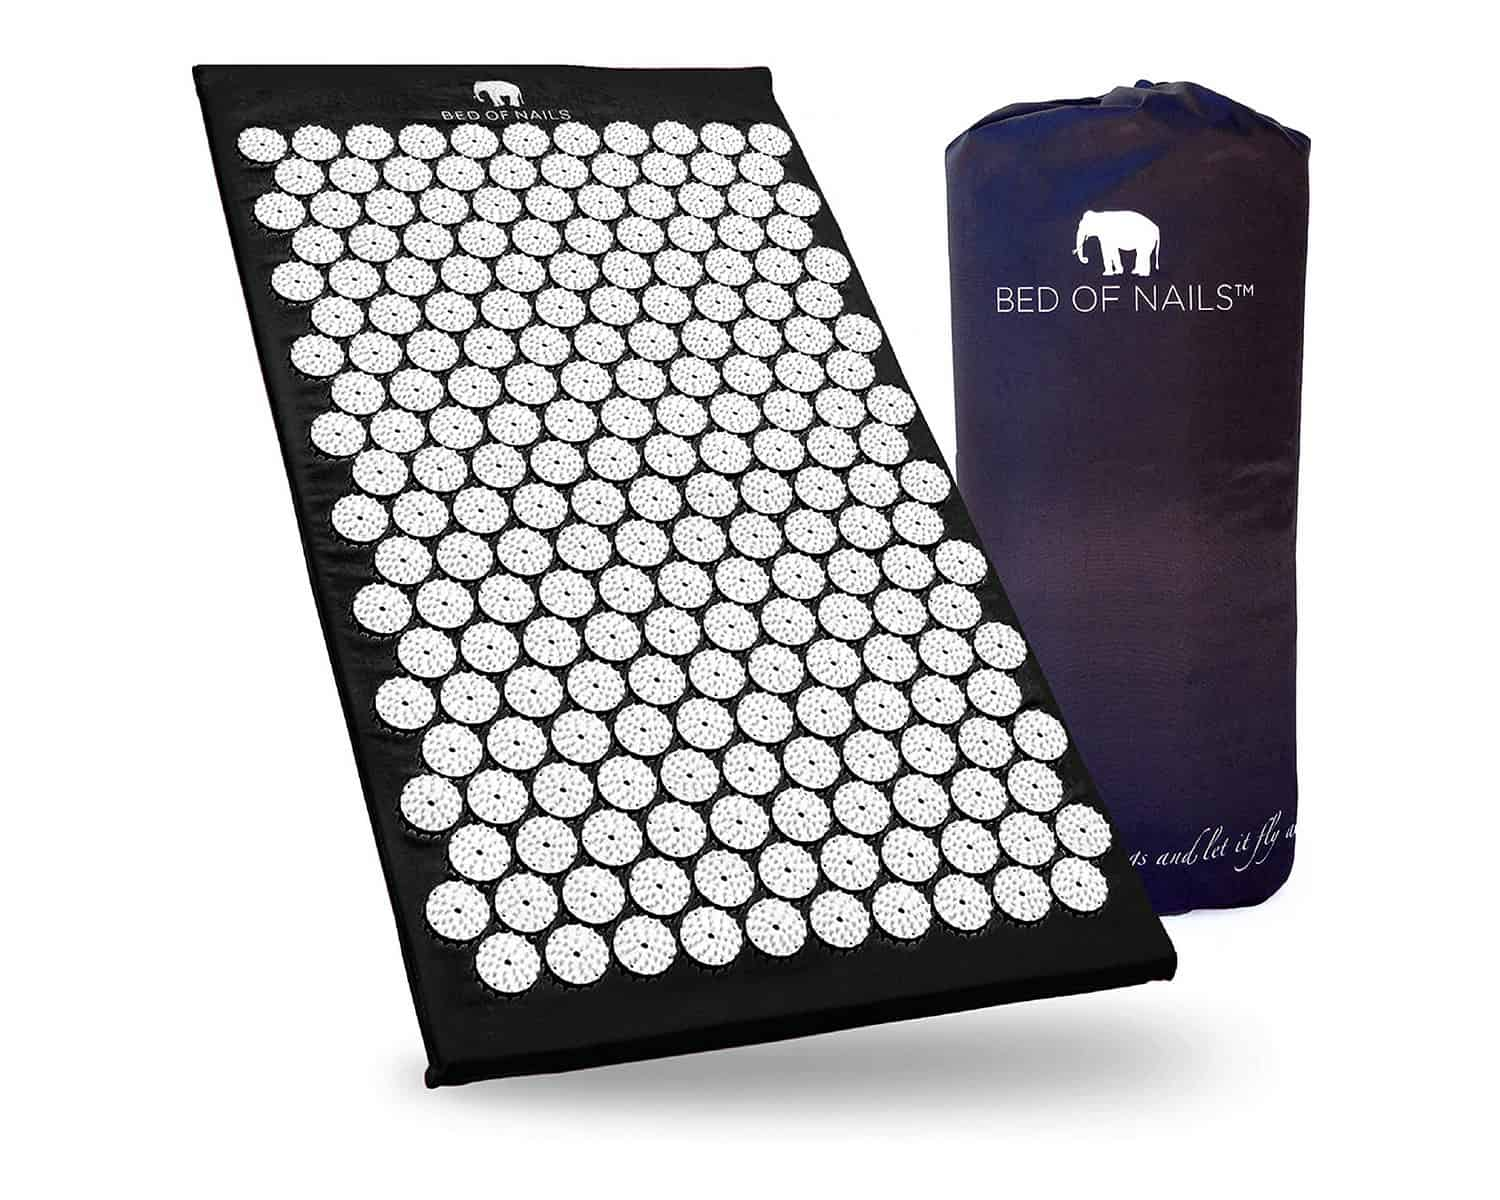 Bed-of-Nails-Acupressure-Mat